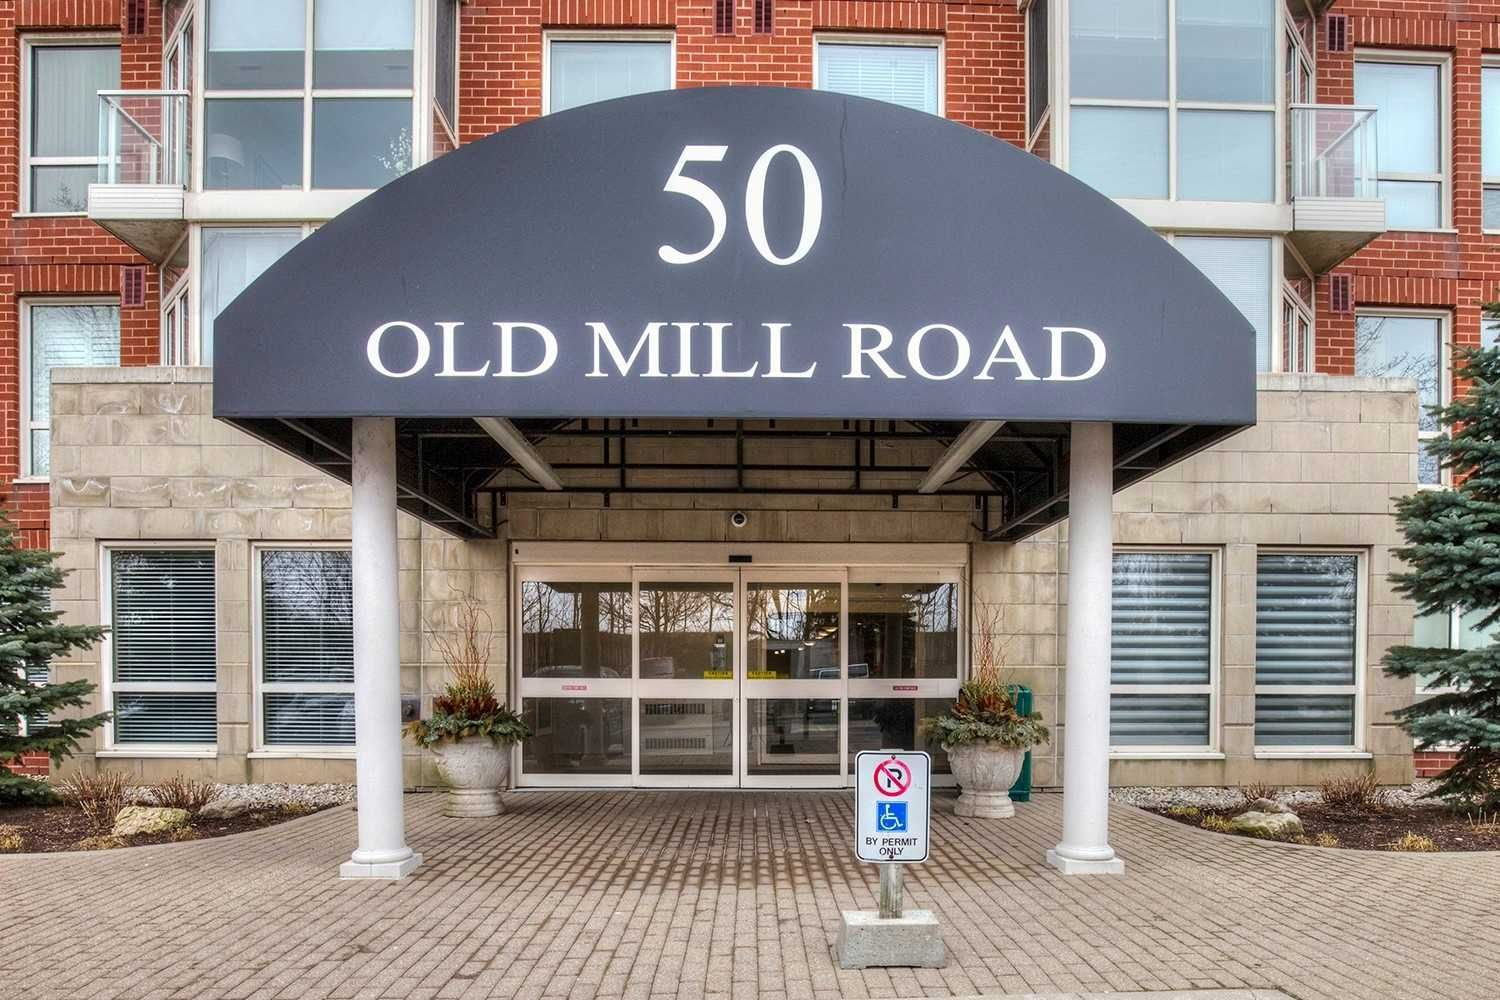 Glb3-50 Old Mill Road for sale